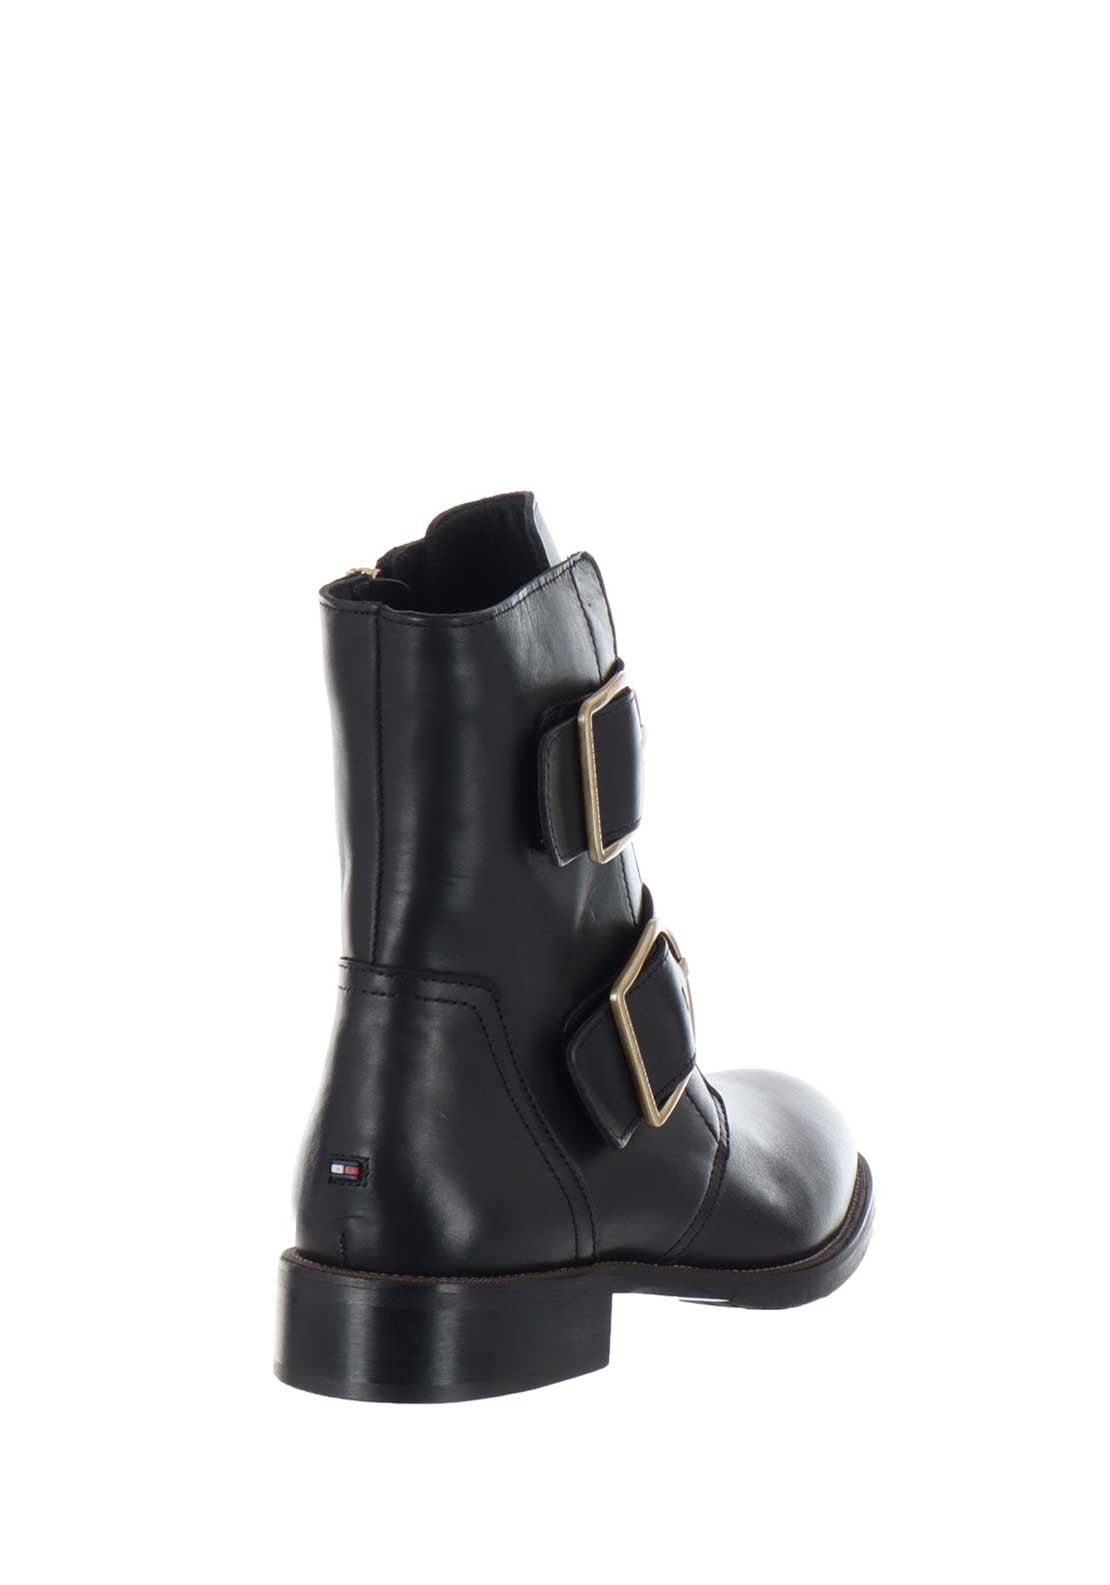 637f8d0bb57cc Tommy Hilfiger Womens Oversized Buckle Leather Boots, Black. 30% OFF